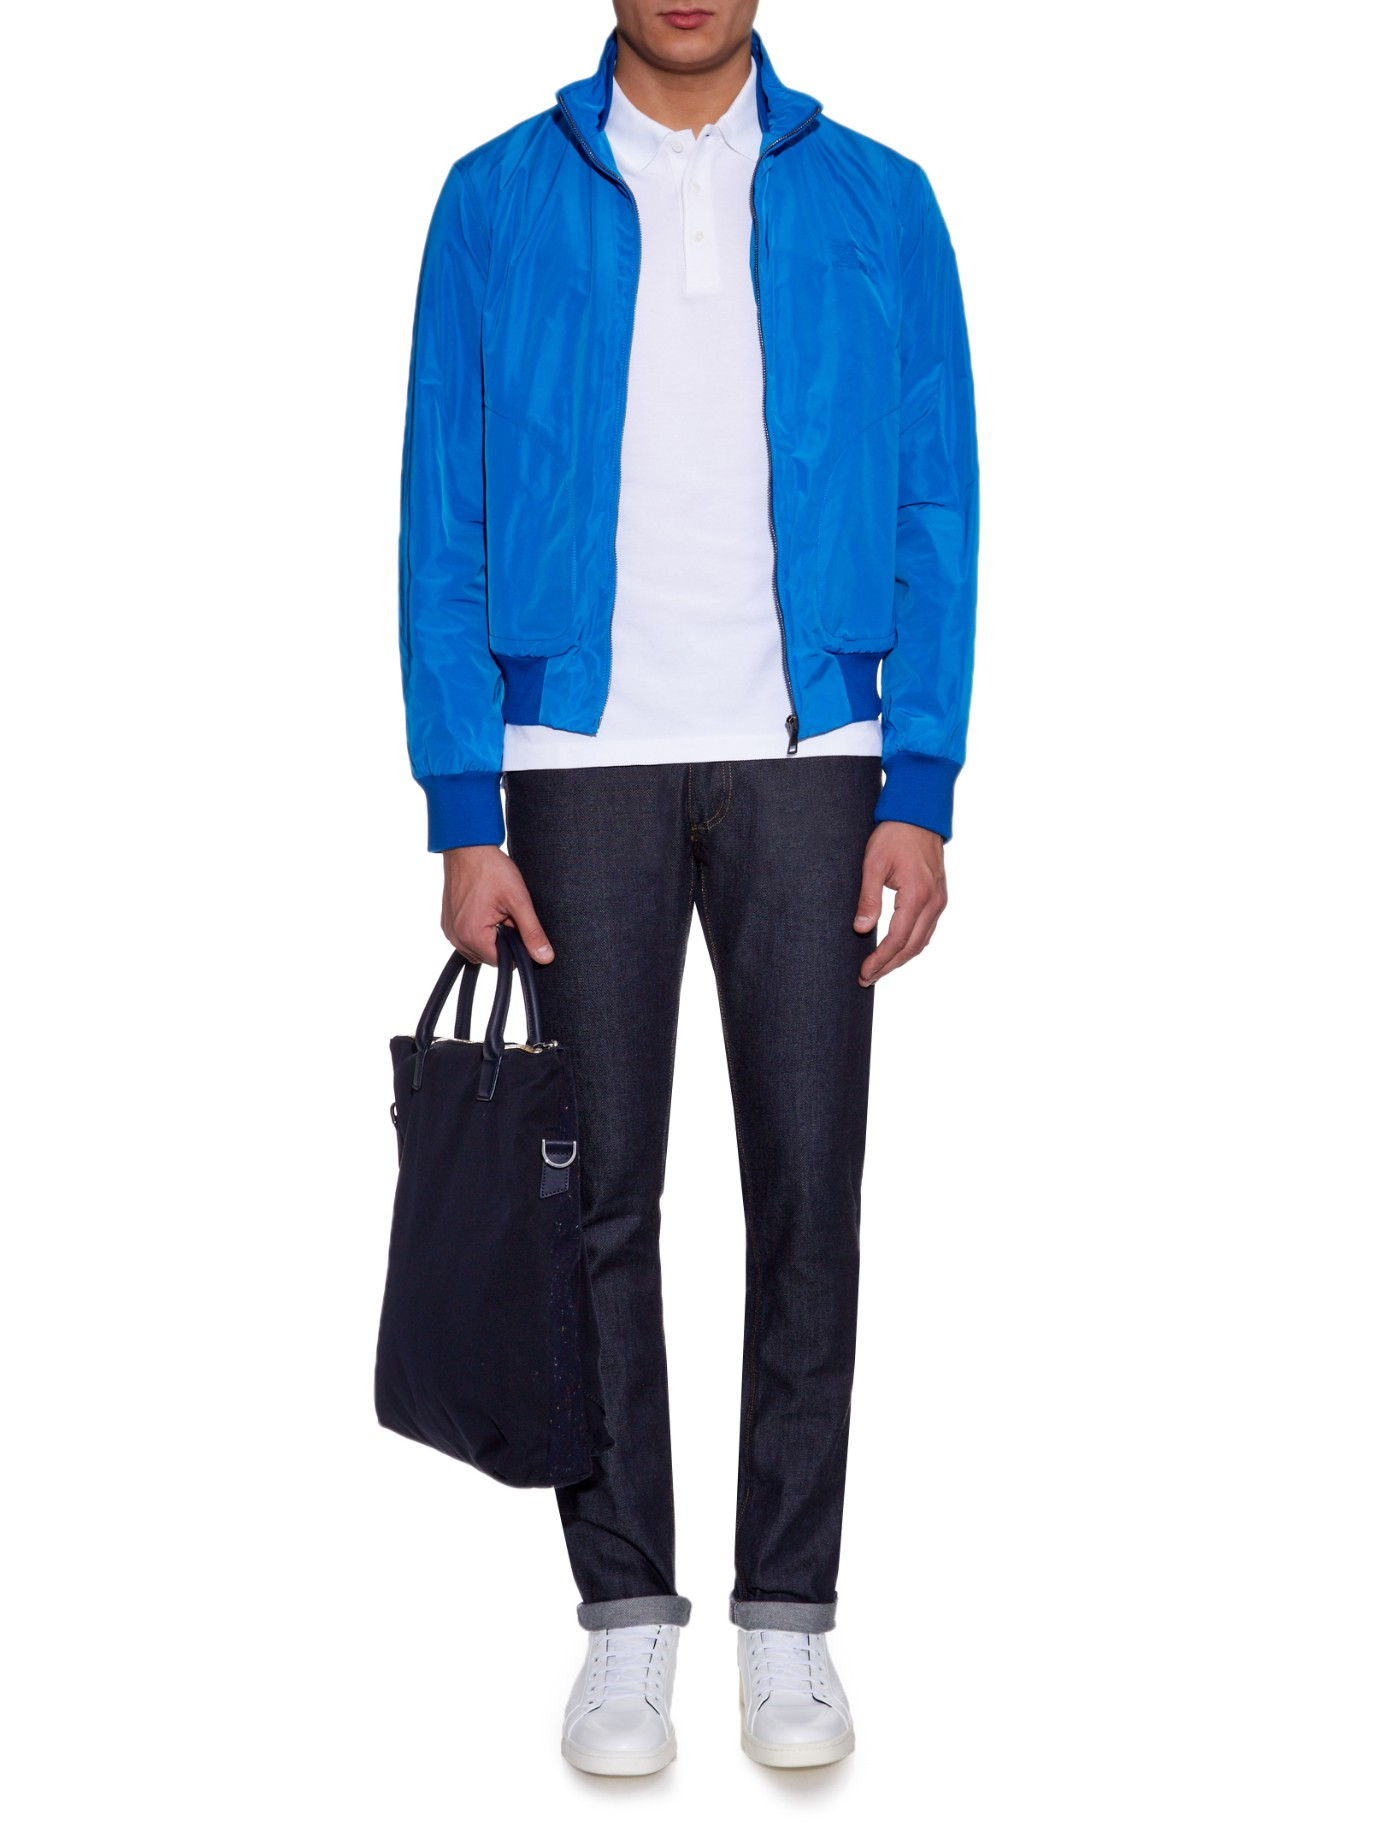 burberry clearance outlet online oftr  burberry blue jacket